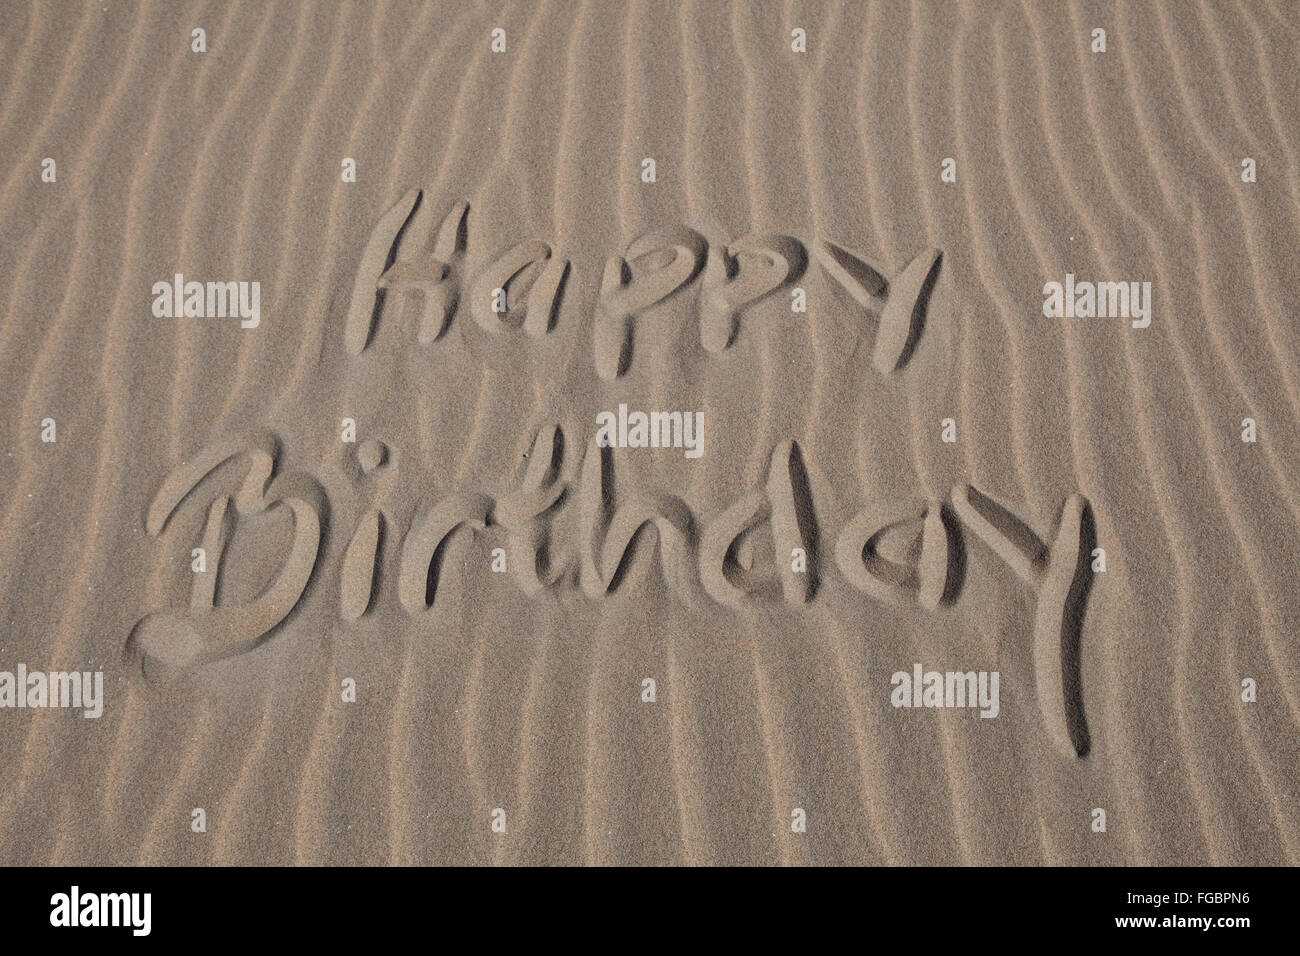 Happy Birthday Text Written On Sandy Beach - Stock Image